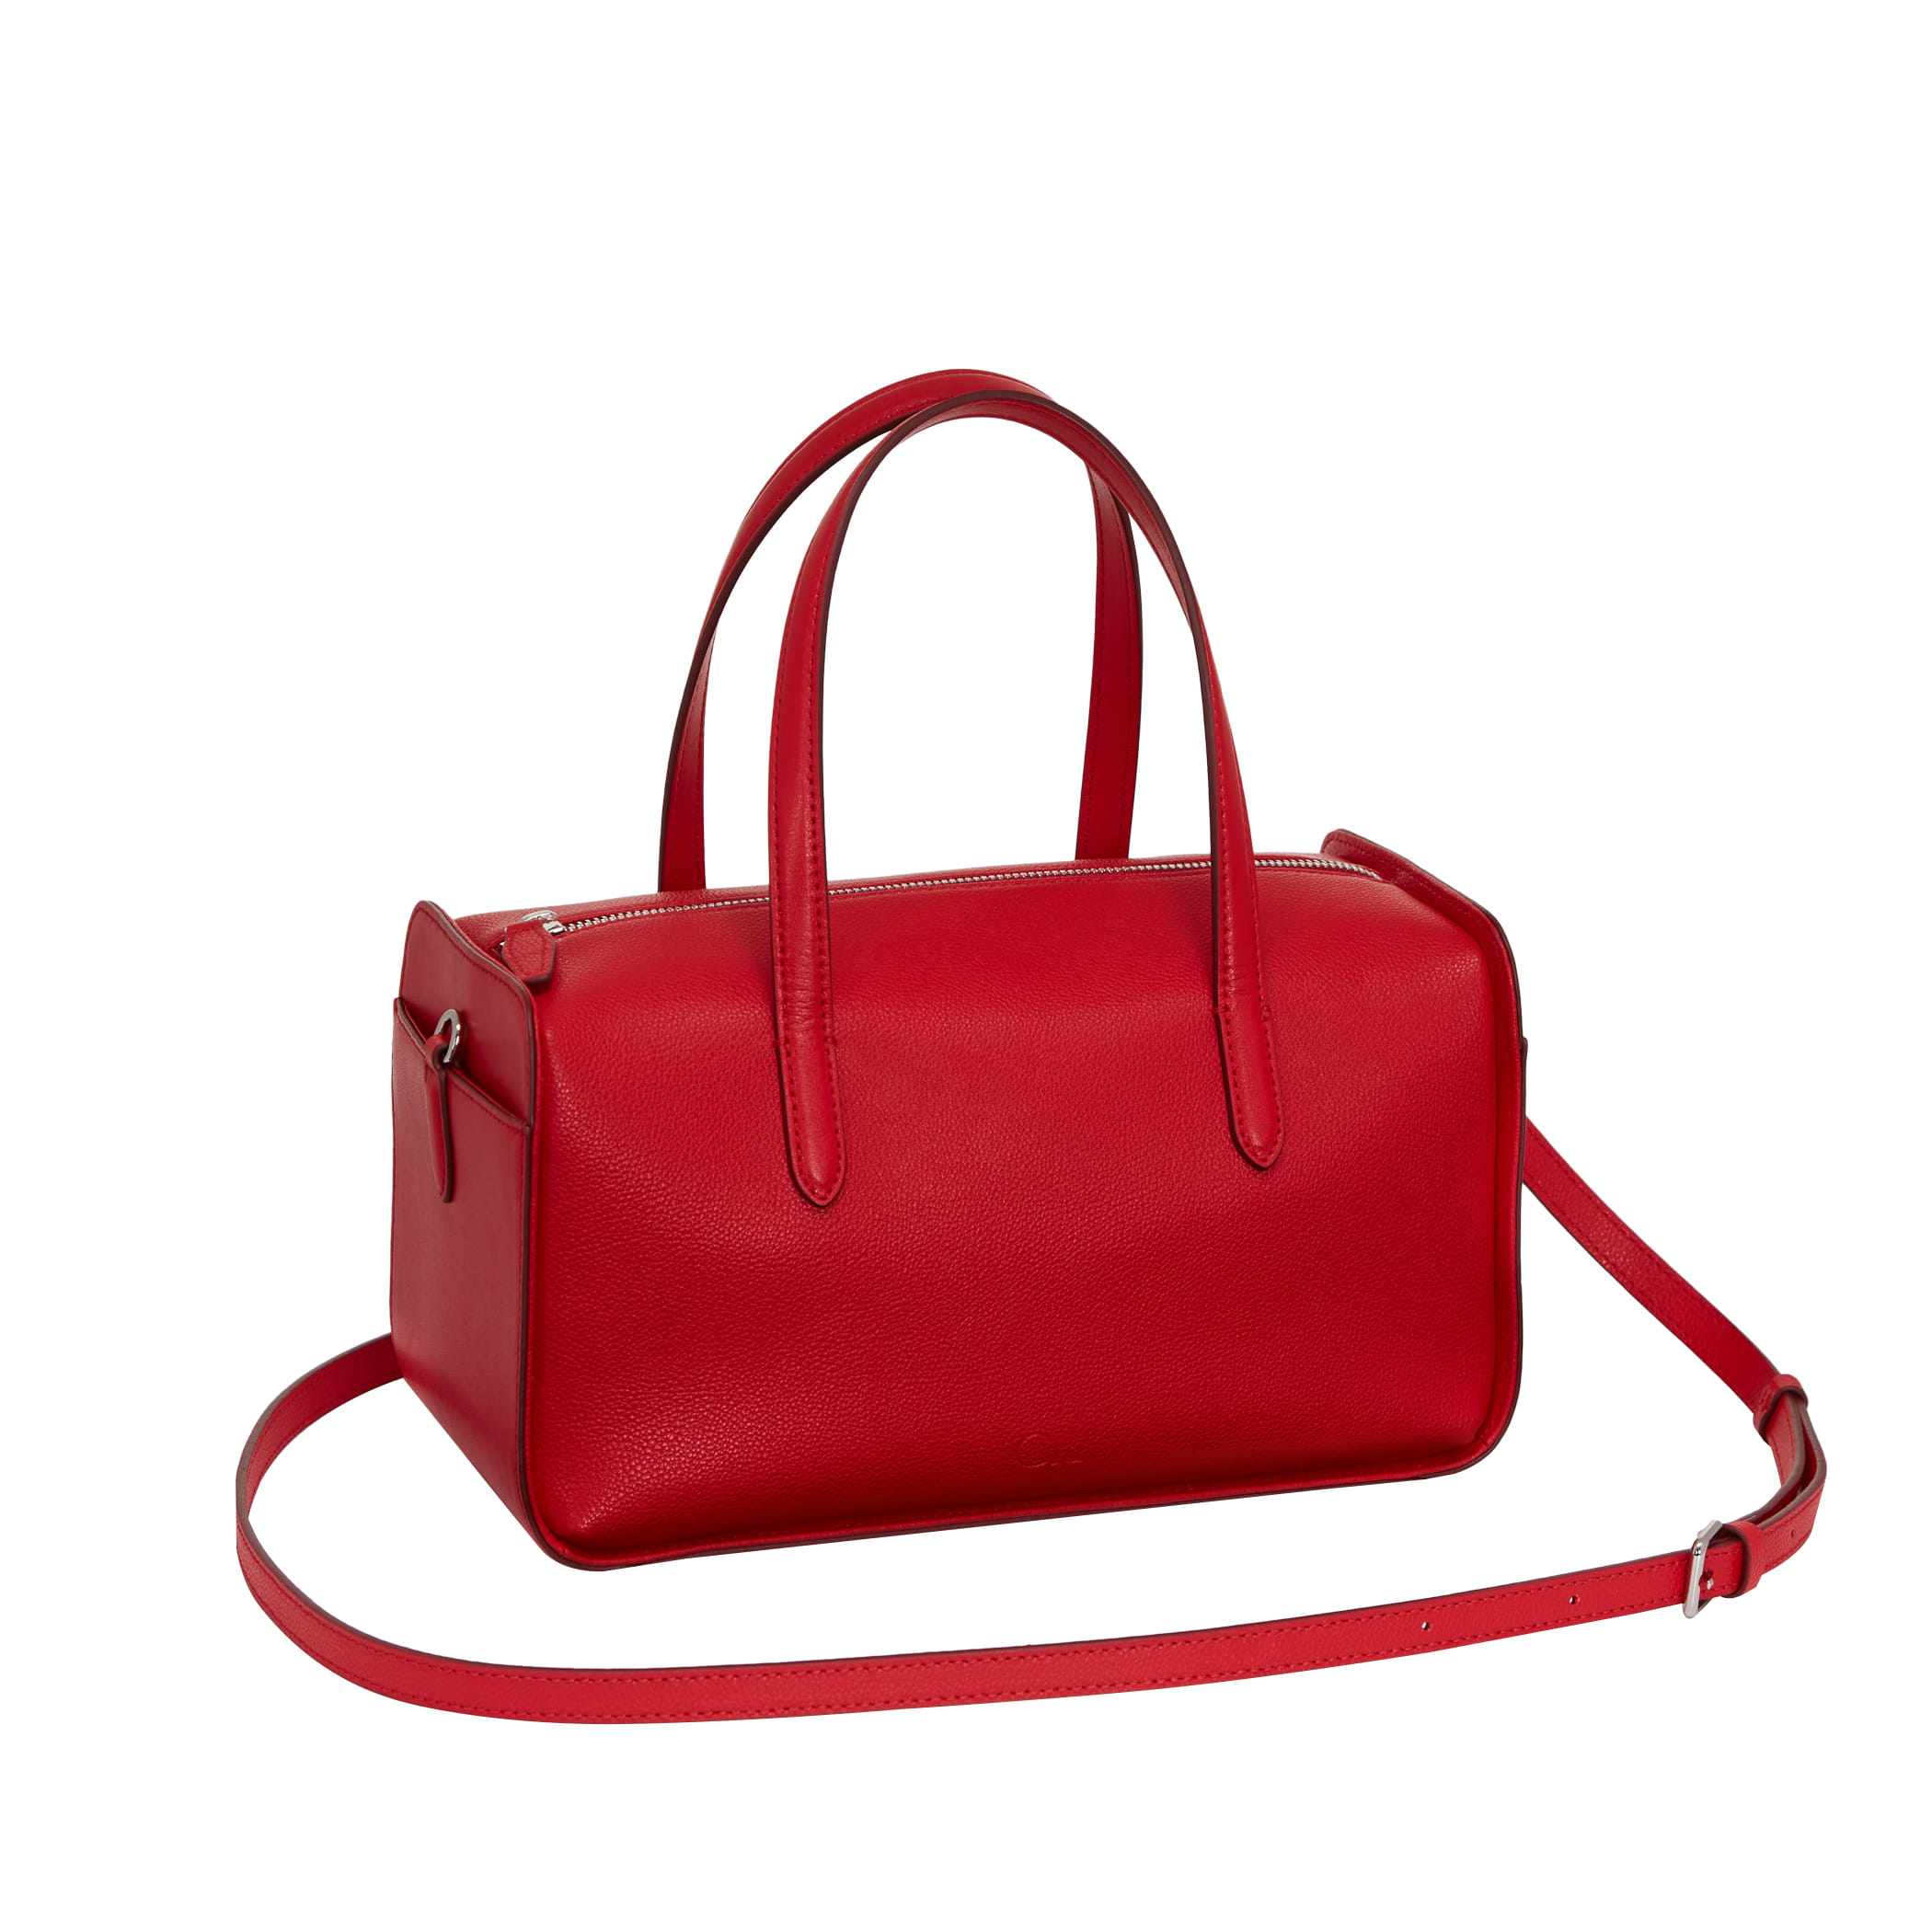 Clu_FLOCK BOSTON BAG IN RED